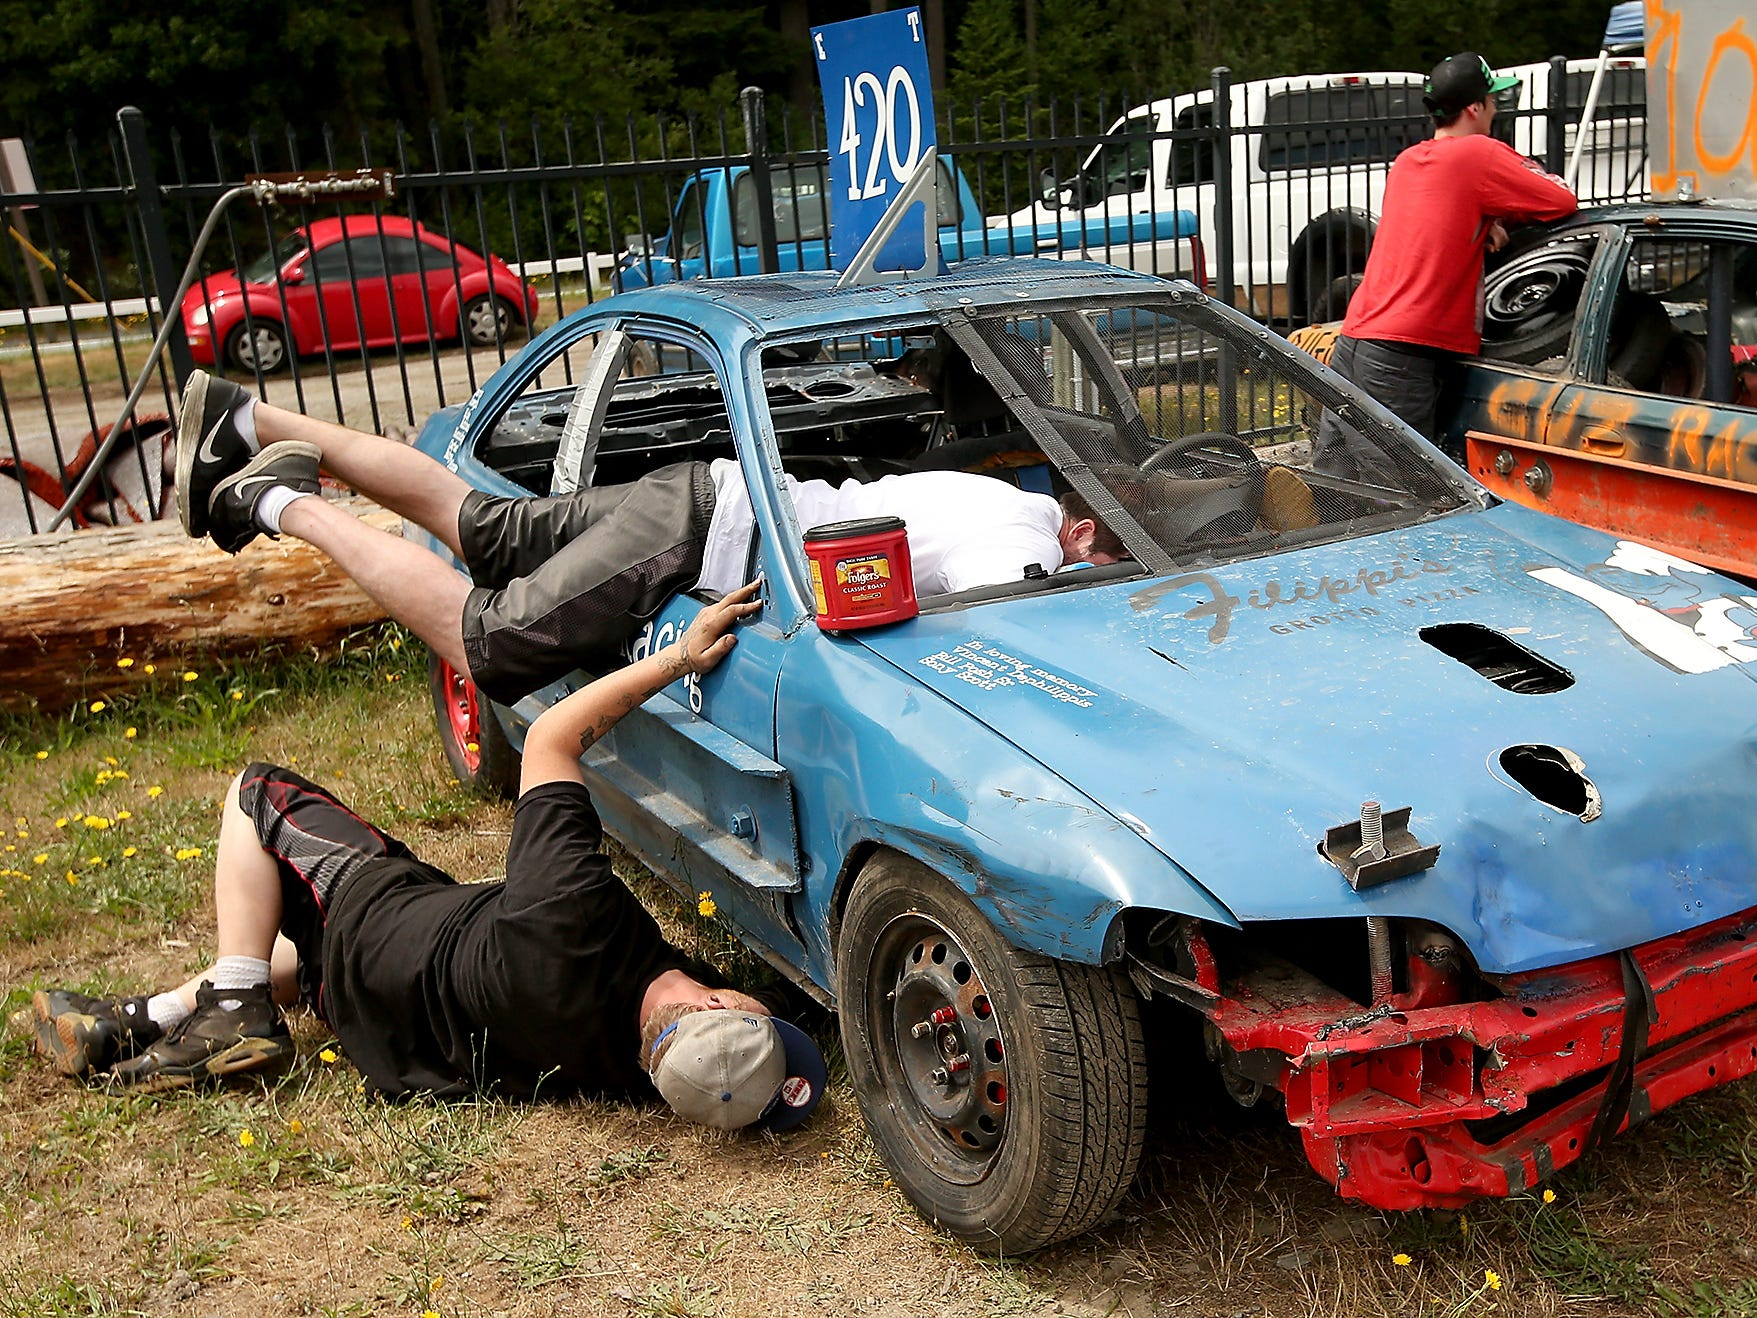 A car is worked on prior to the start of the Kitsap Destruction Derby on Saturday, June 23, 2018.